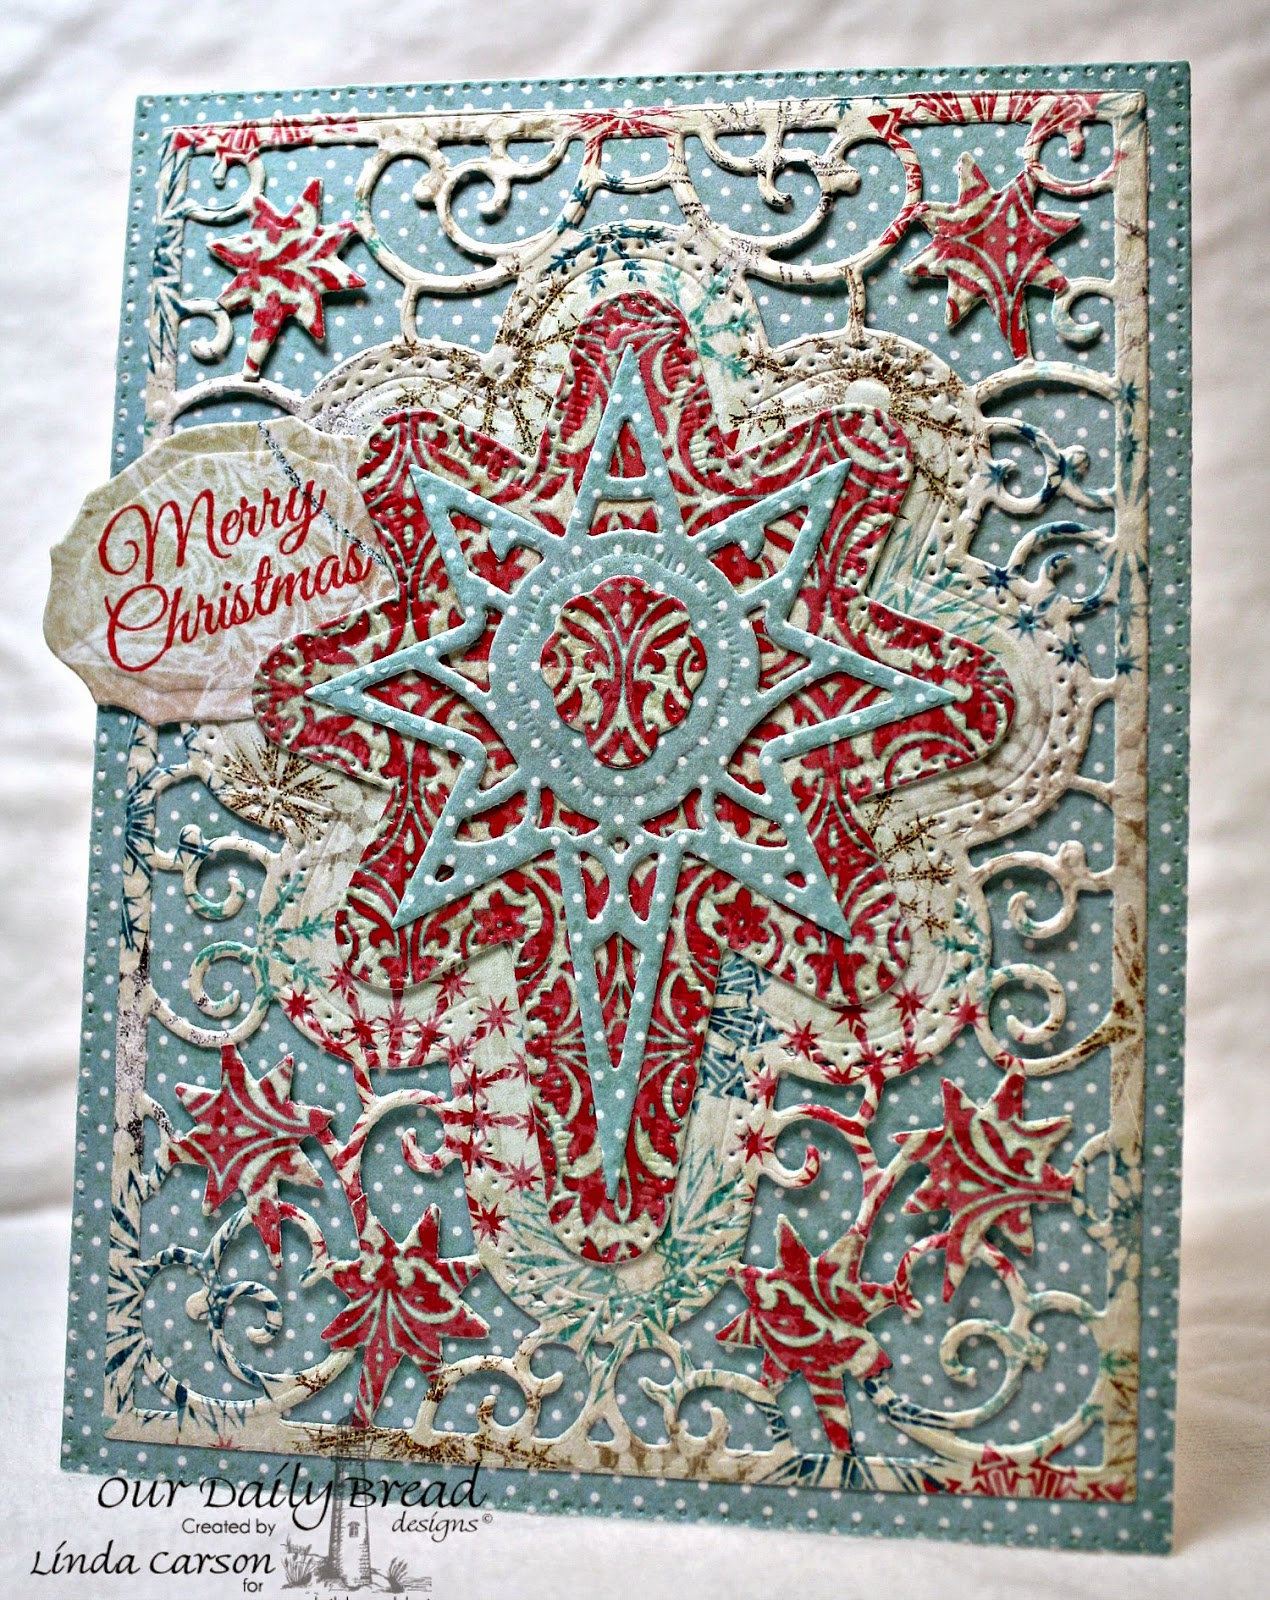 Our Daily Bread Designs, Poinsettia Wreath, Elegant Oval dies, Flourish Star Pattern die, Christmas Paper 2014, designer Linda Carson